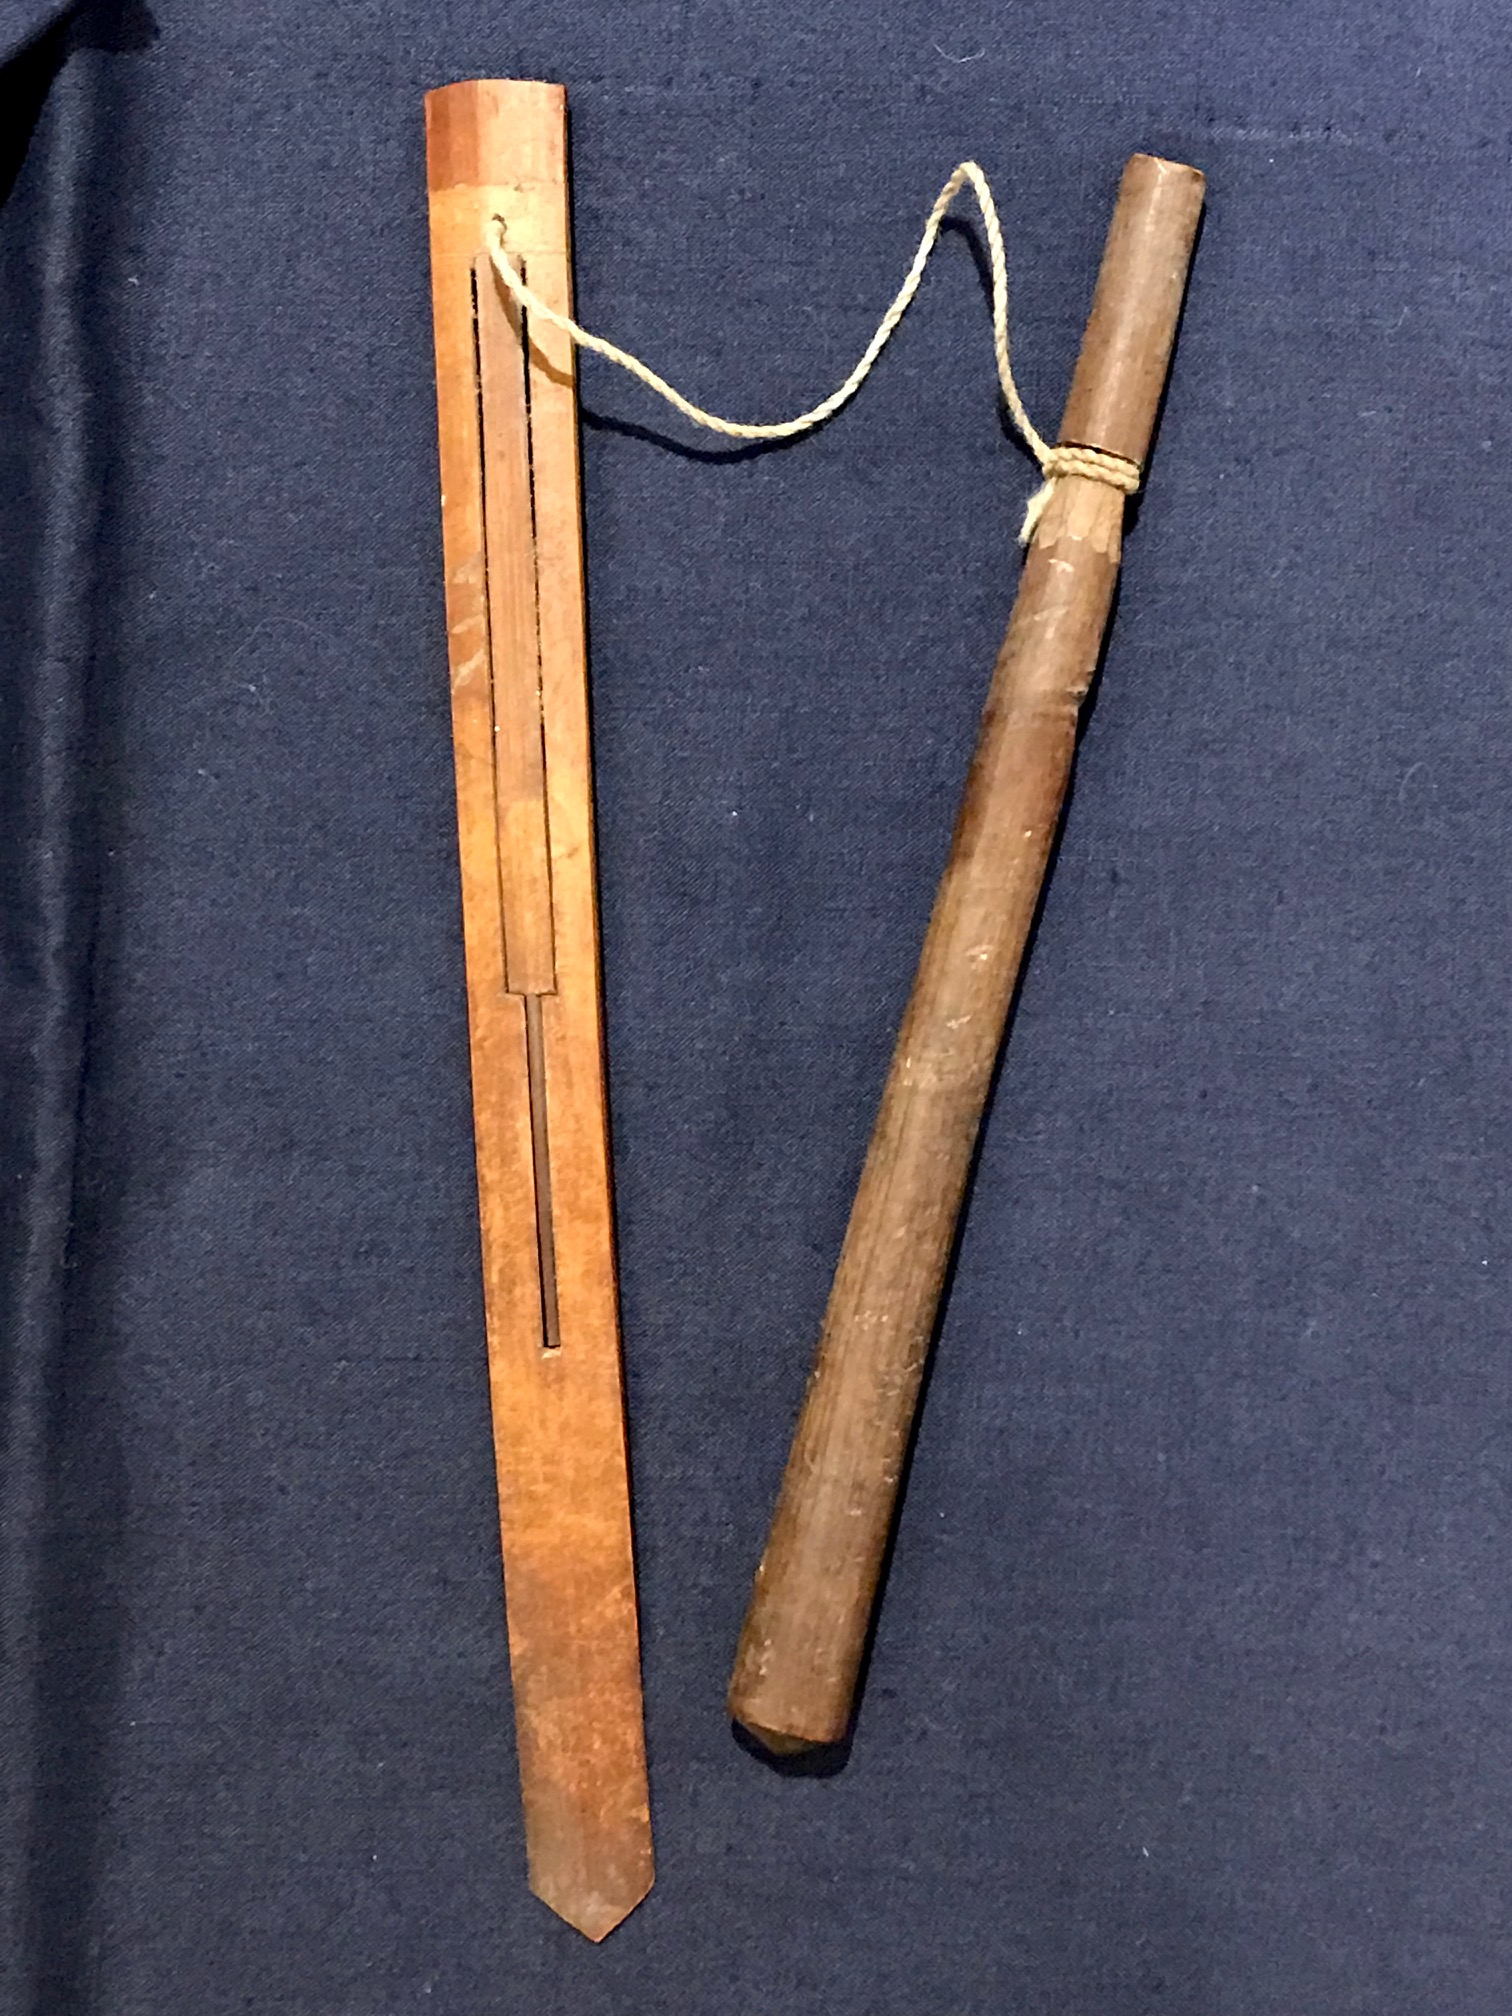 "Tribal Musical Instrument, Mouth Harp with pull stick, Sasak tribe, Lombok Island, Indonesia, Early to mid 20th c, bamboo, string, played by using the mouth as the resonating cavity and pulling the string to vibrate the bamboo. There are many traditional songs written for it. It has been referred to as a 'mind cleaner' Because it uses the mouth to resonate, it clears the brain of unclear thoughts. 7 1/2"" x 5/8"" x 1/8"", pull stick - 6 3/4"" x 3/8, $65., thedavidalancollection.com , solana beach, ca"